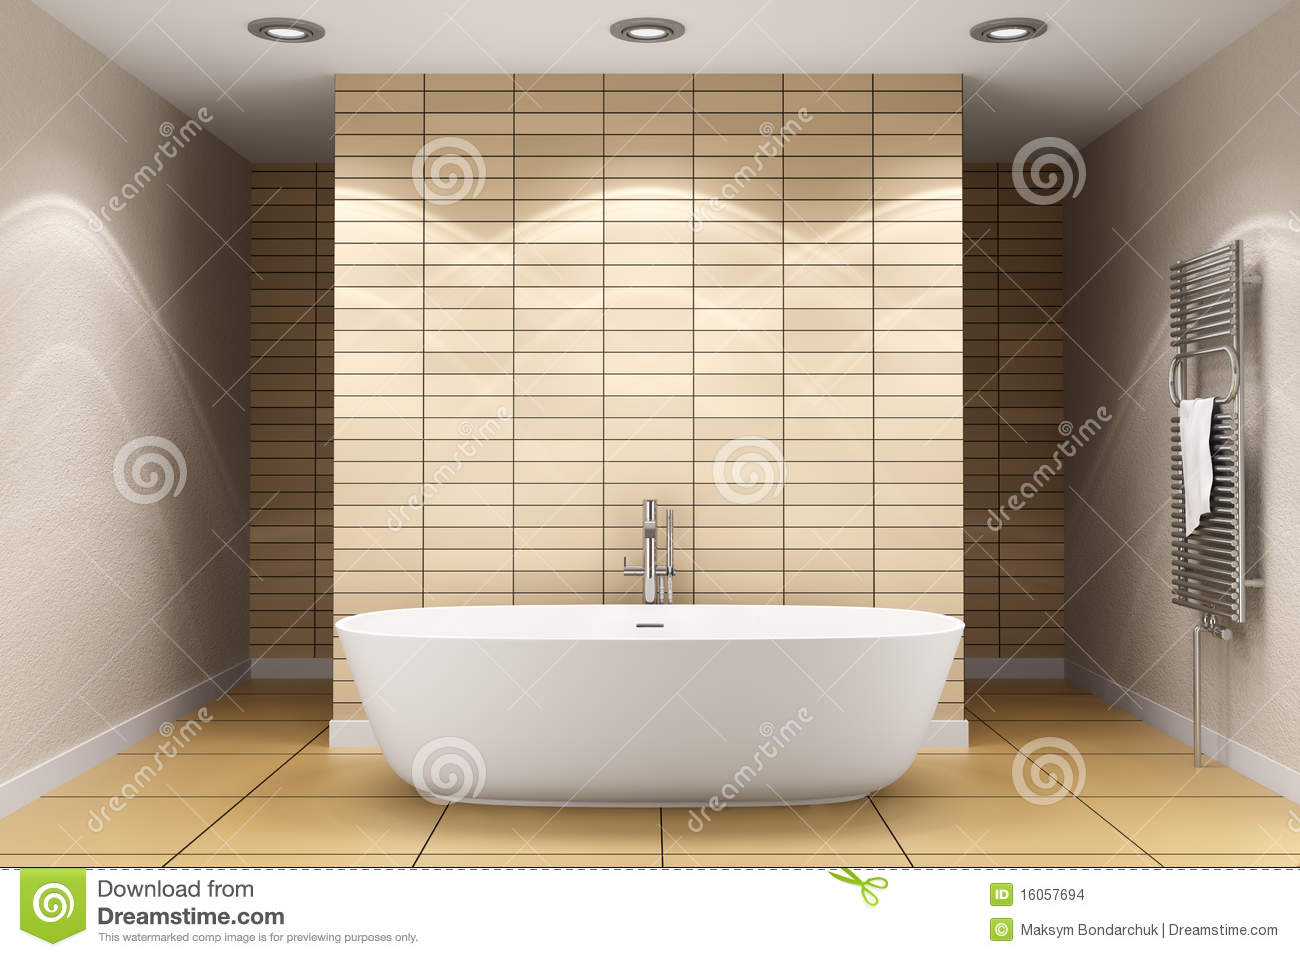 Grundriss Badezimmer Länglich Modern Bathroom With Beige Tiles On Wall Stock Photo